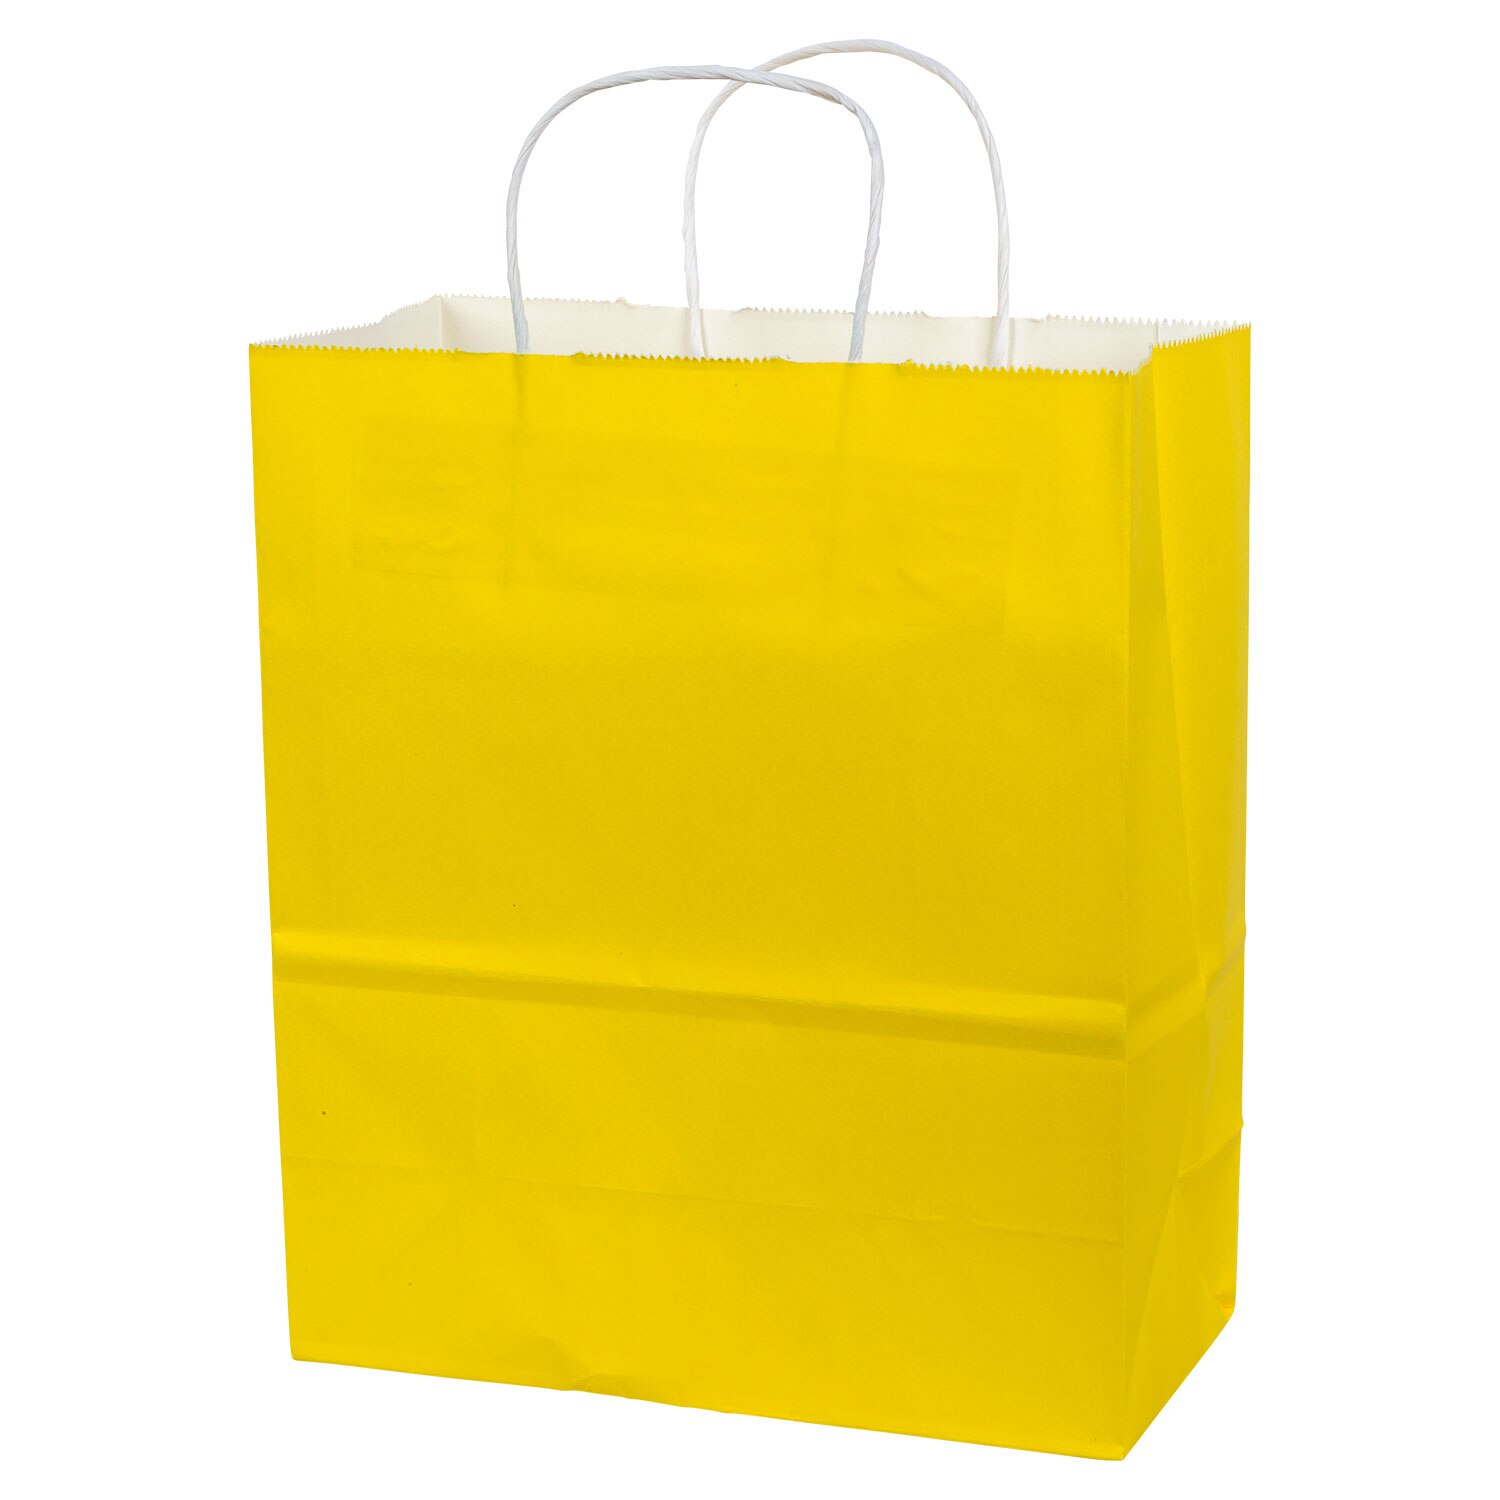 Voila Matte Yellow And White Kraft Large Gift Bags 10x12 In